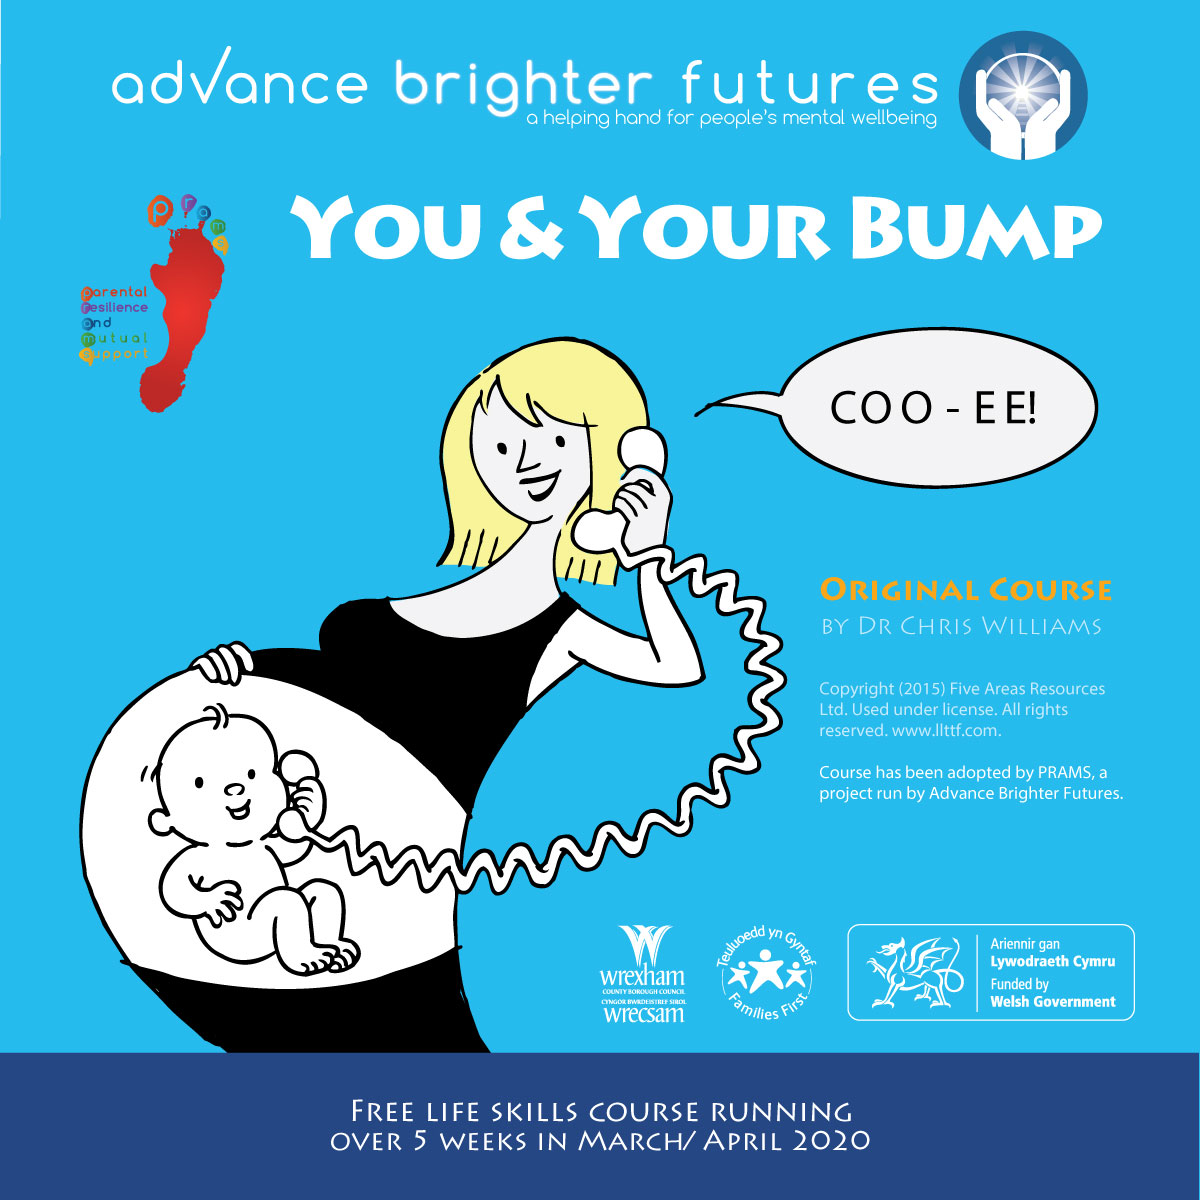 You & Your Bump